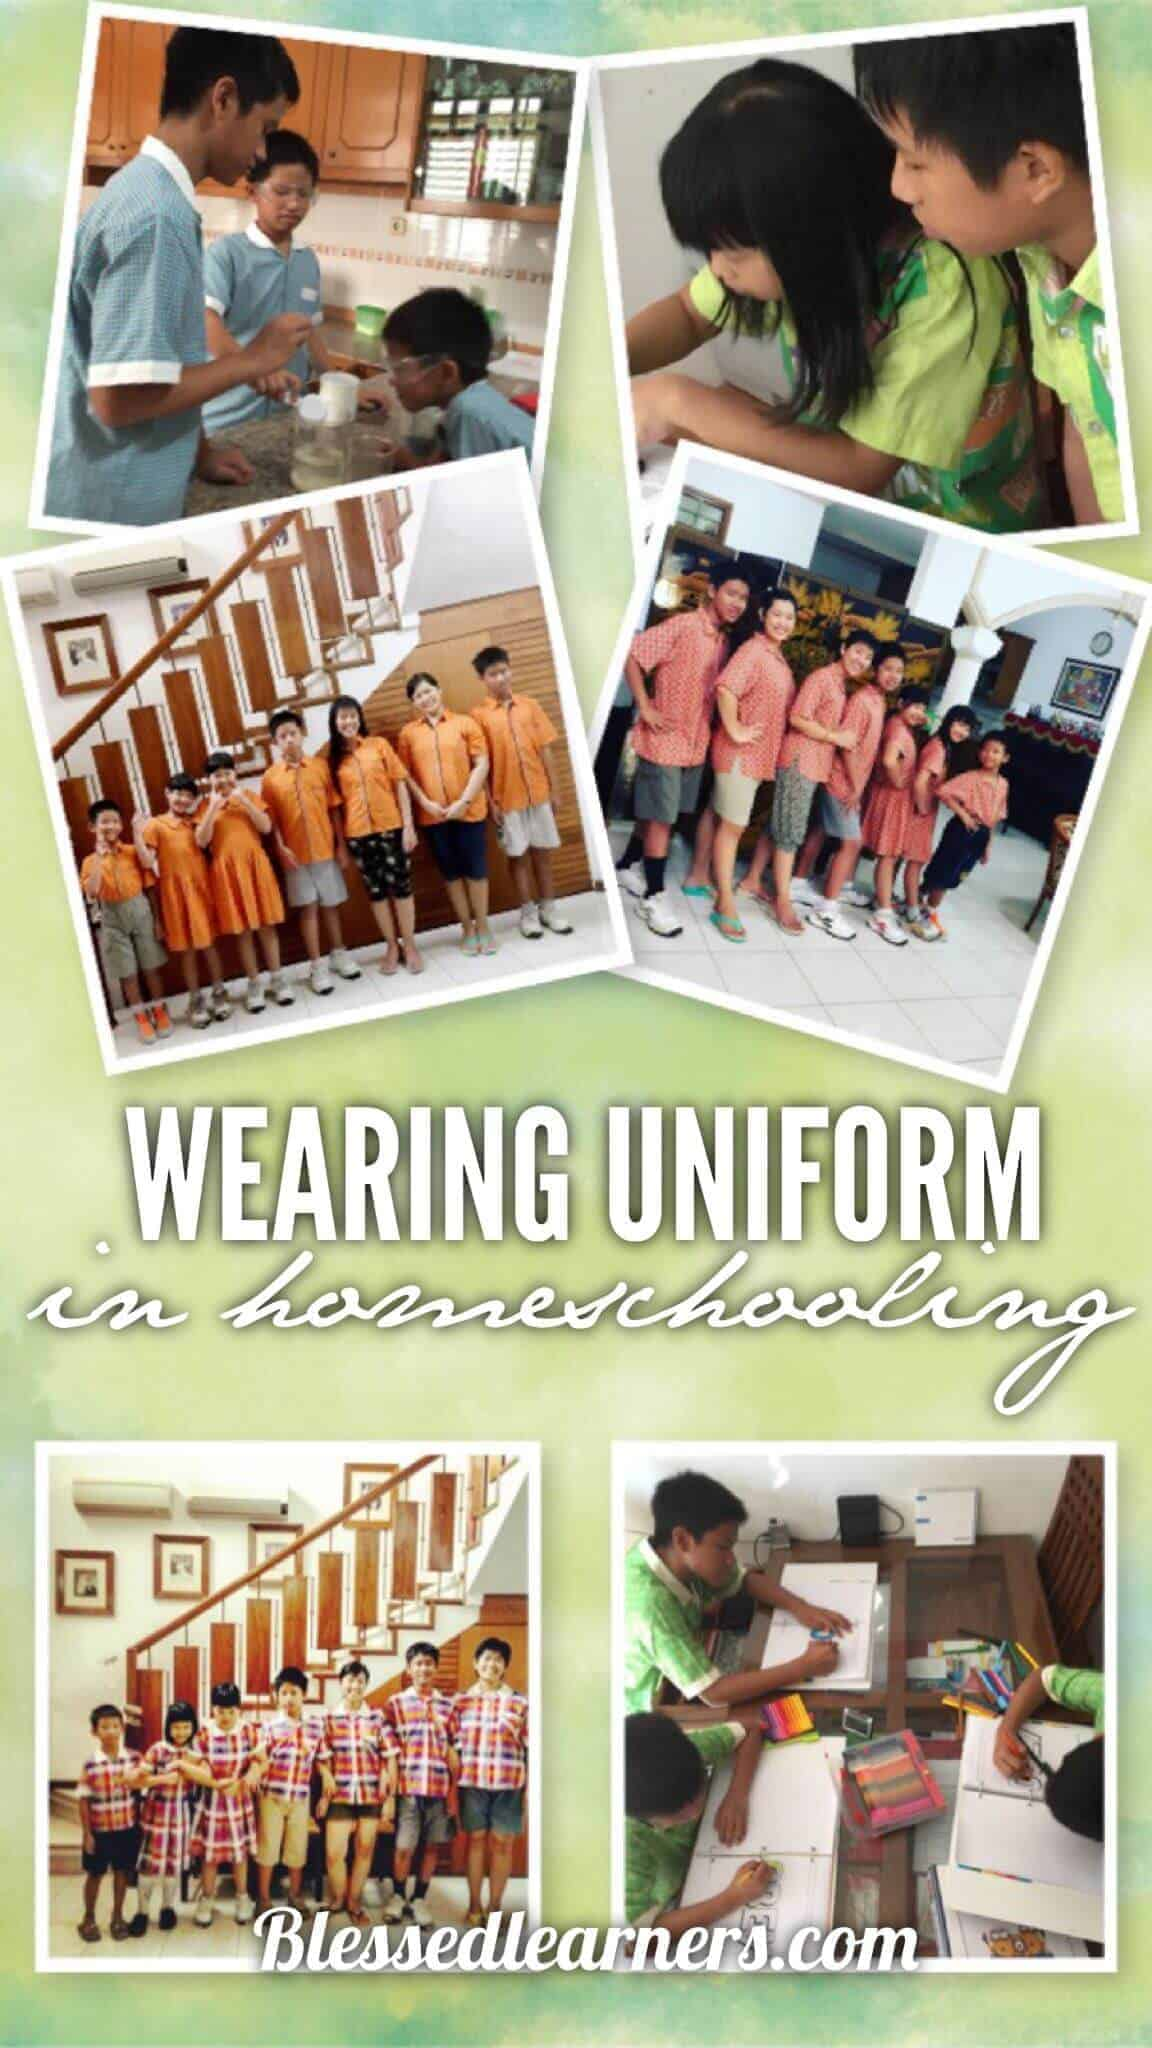 Wearing Uniforms